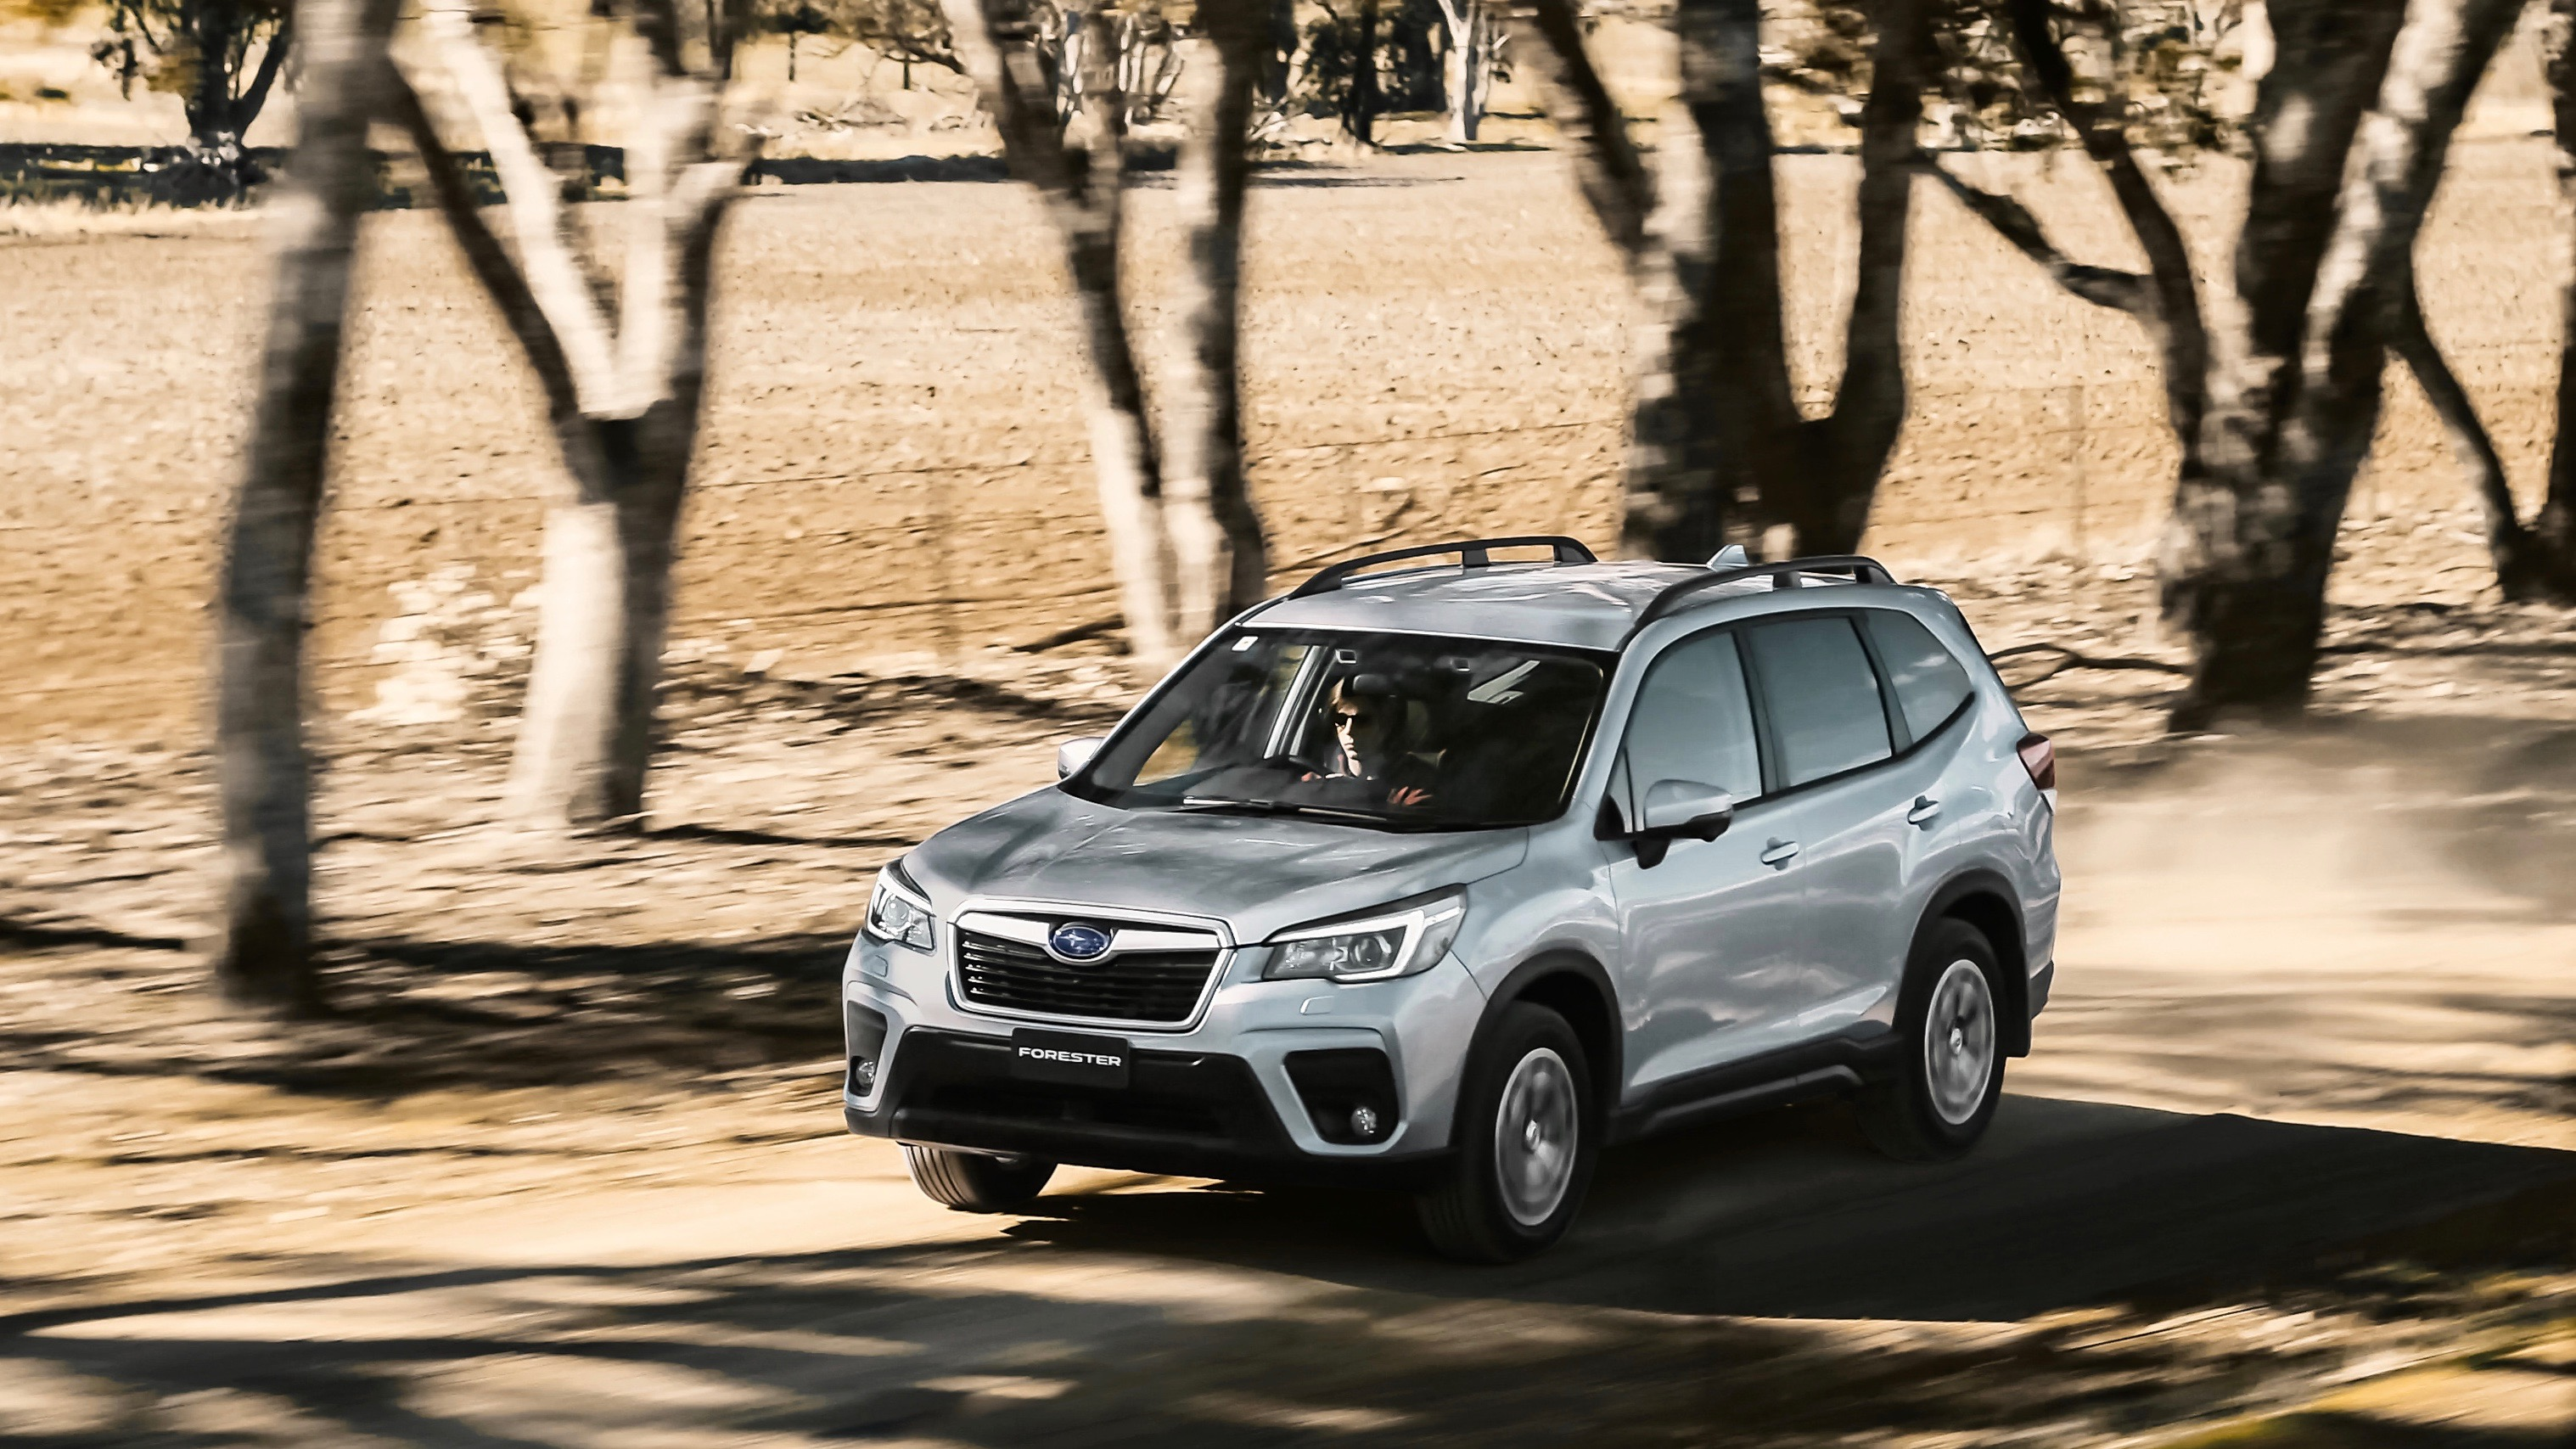 2019 Subaru Forester 2.5i-L silver moving front